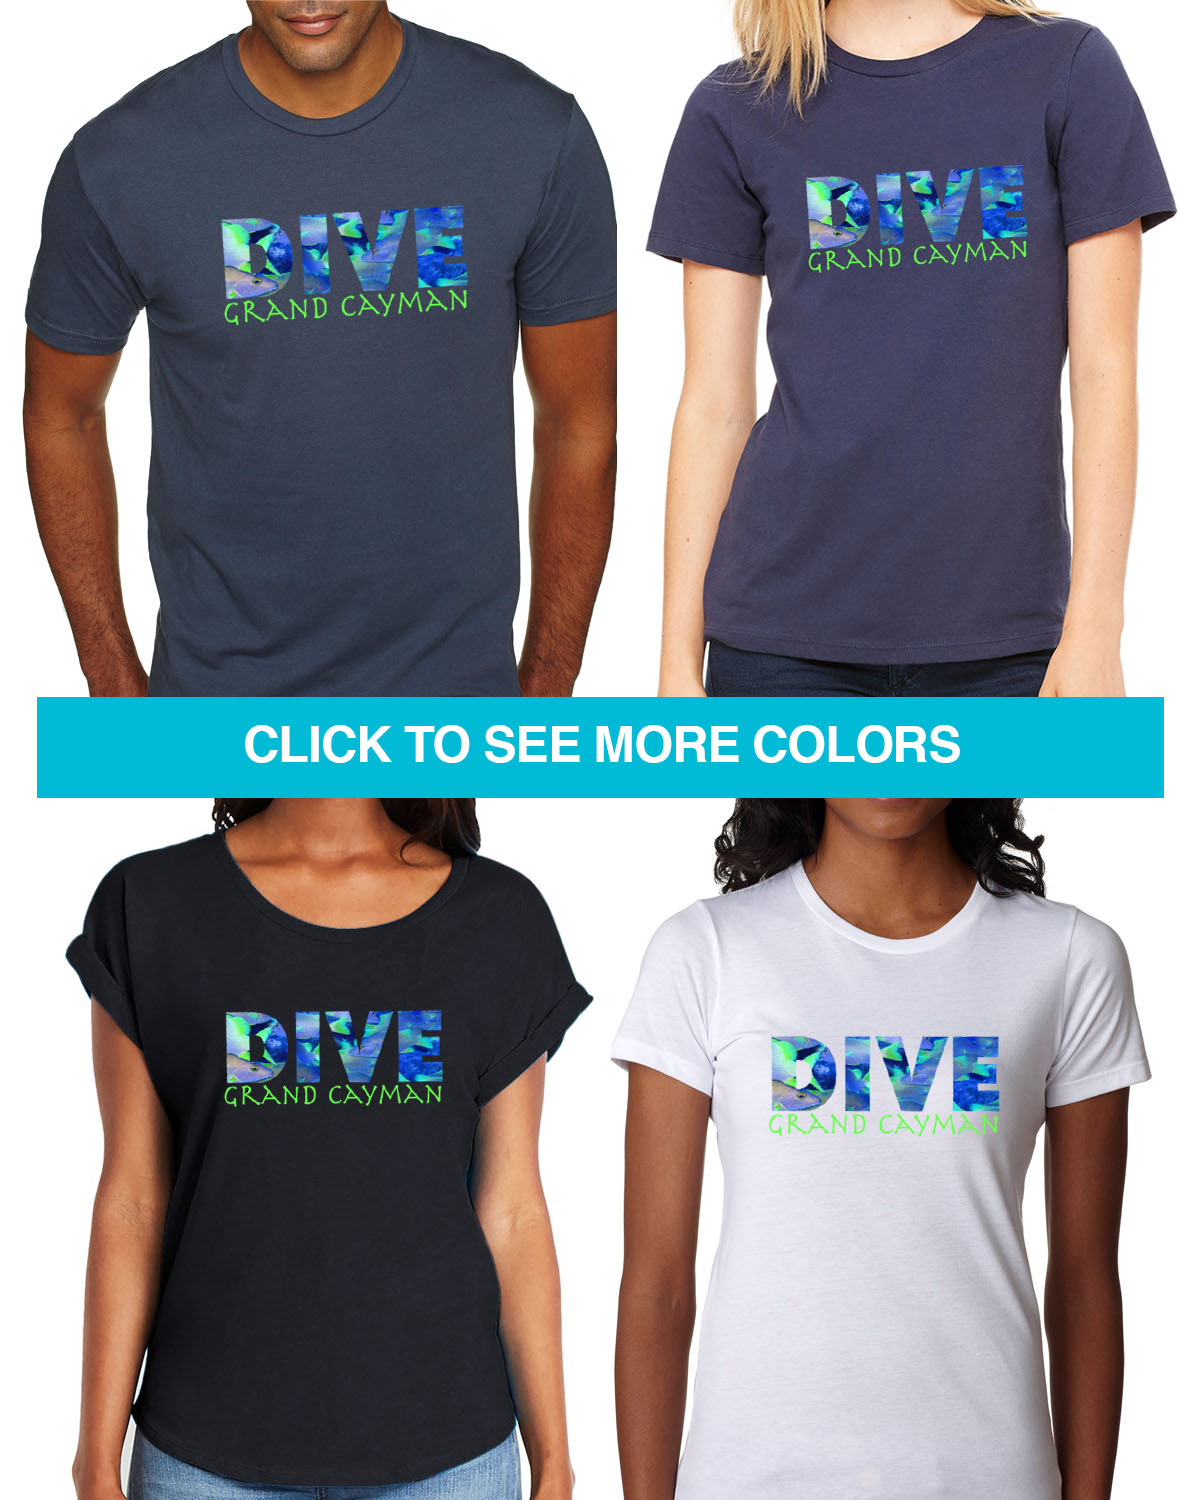 DIVE Grand Cayman Tees for Men & Women